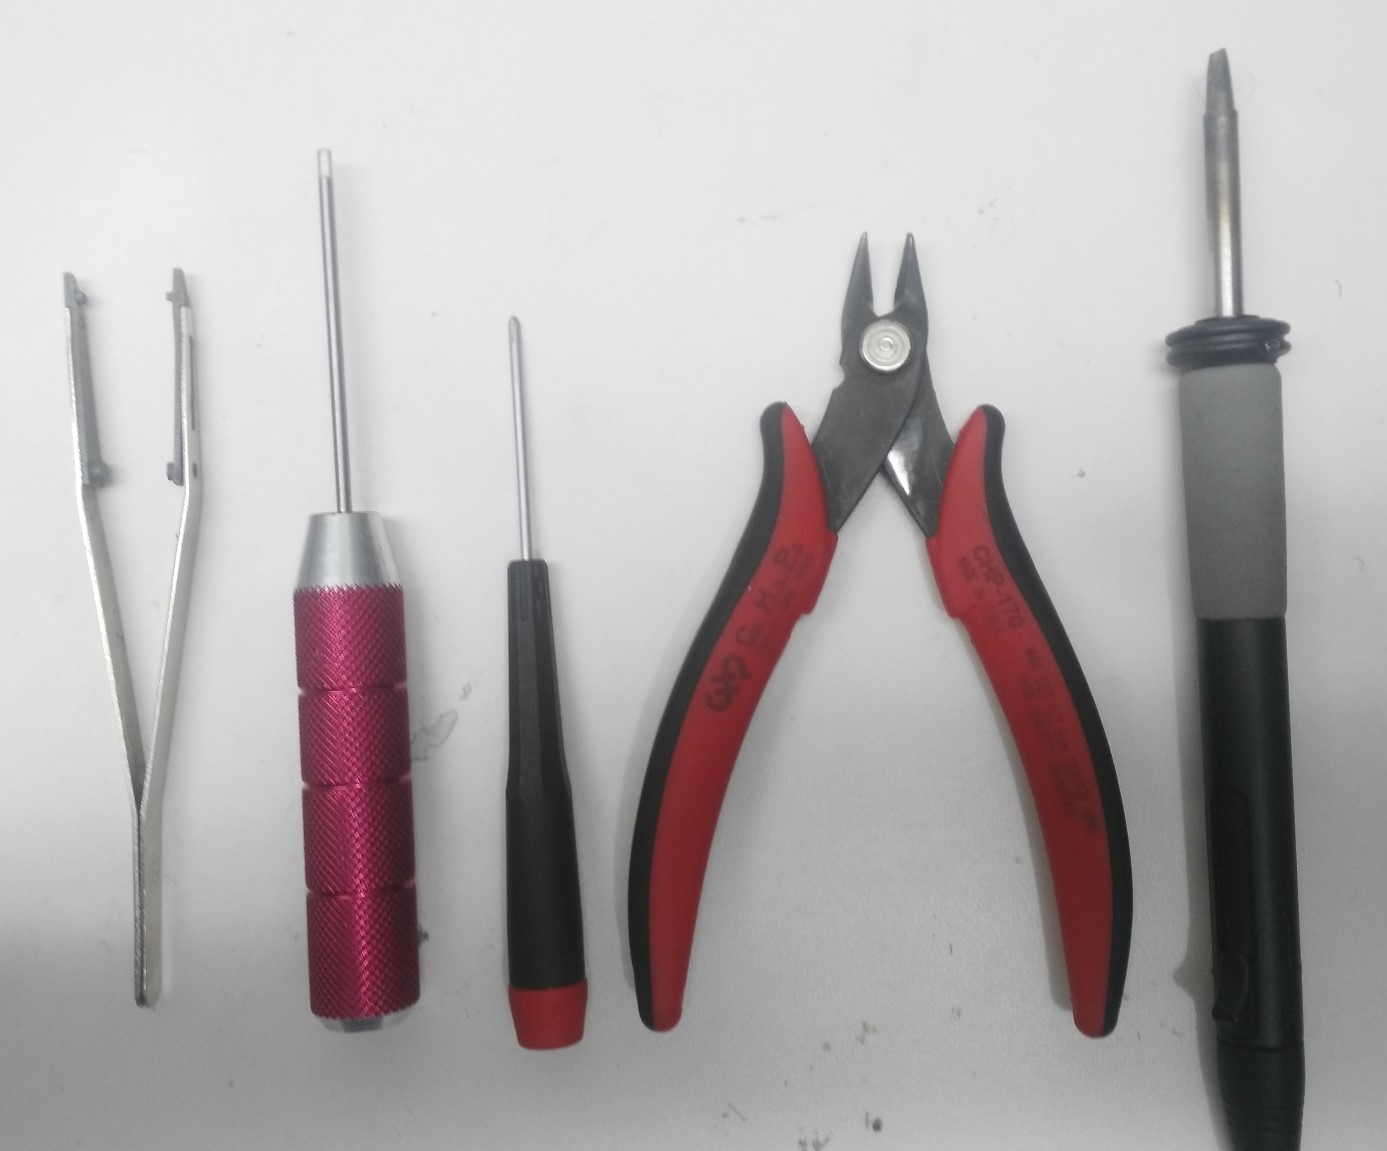 Tools required for assembling QAV250